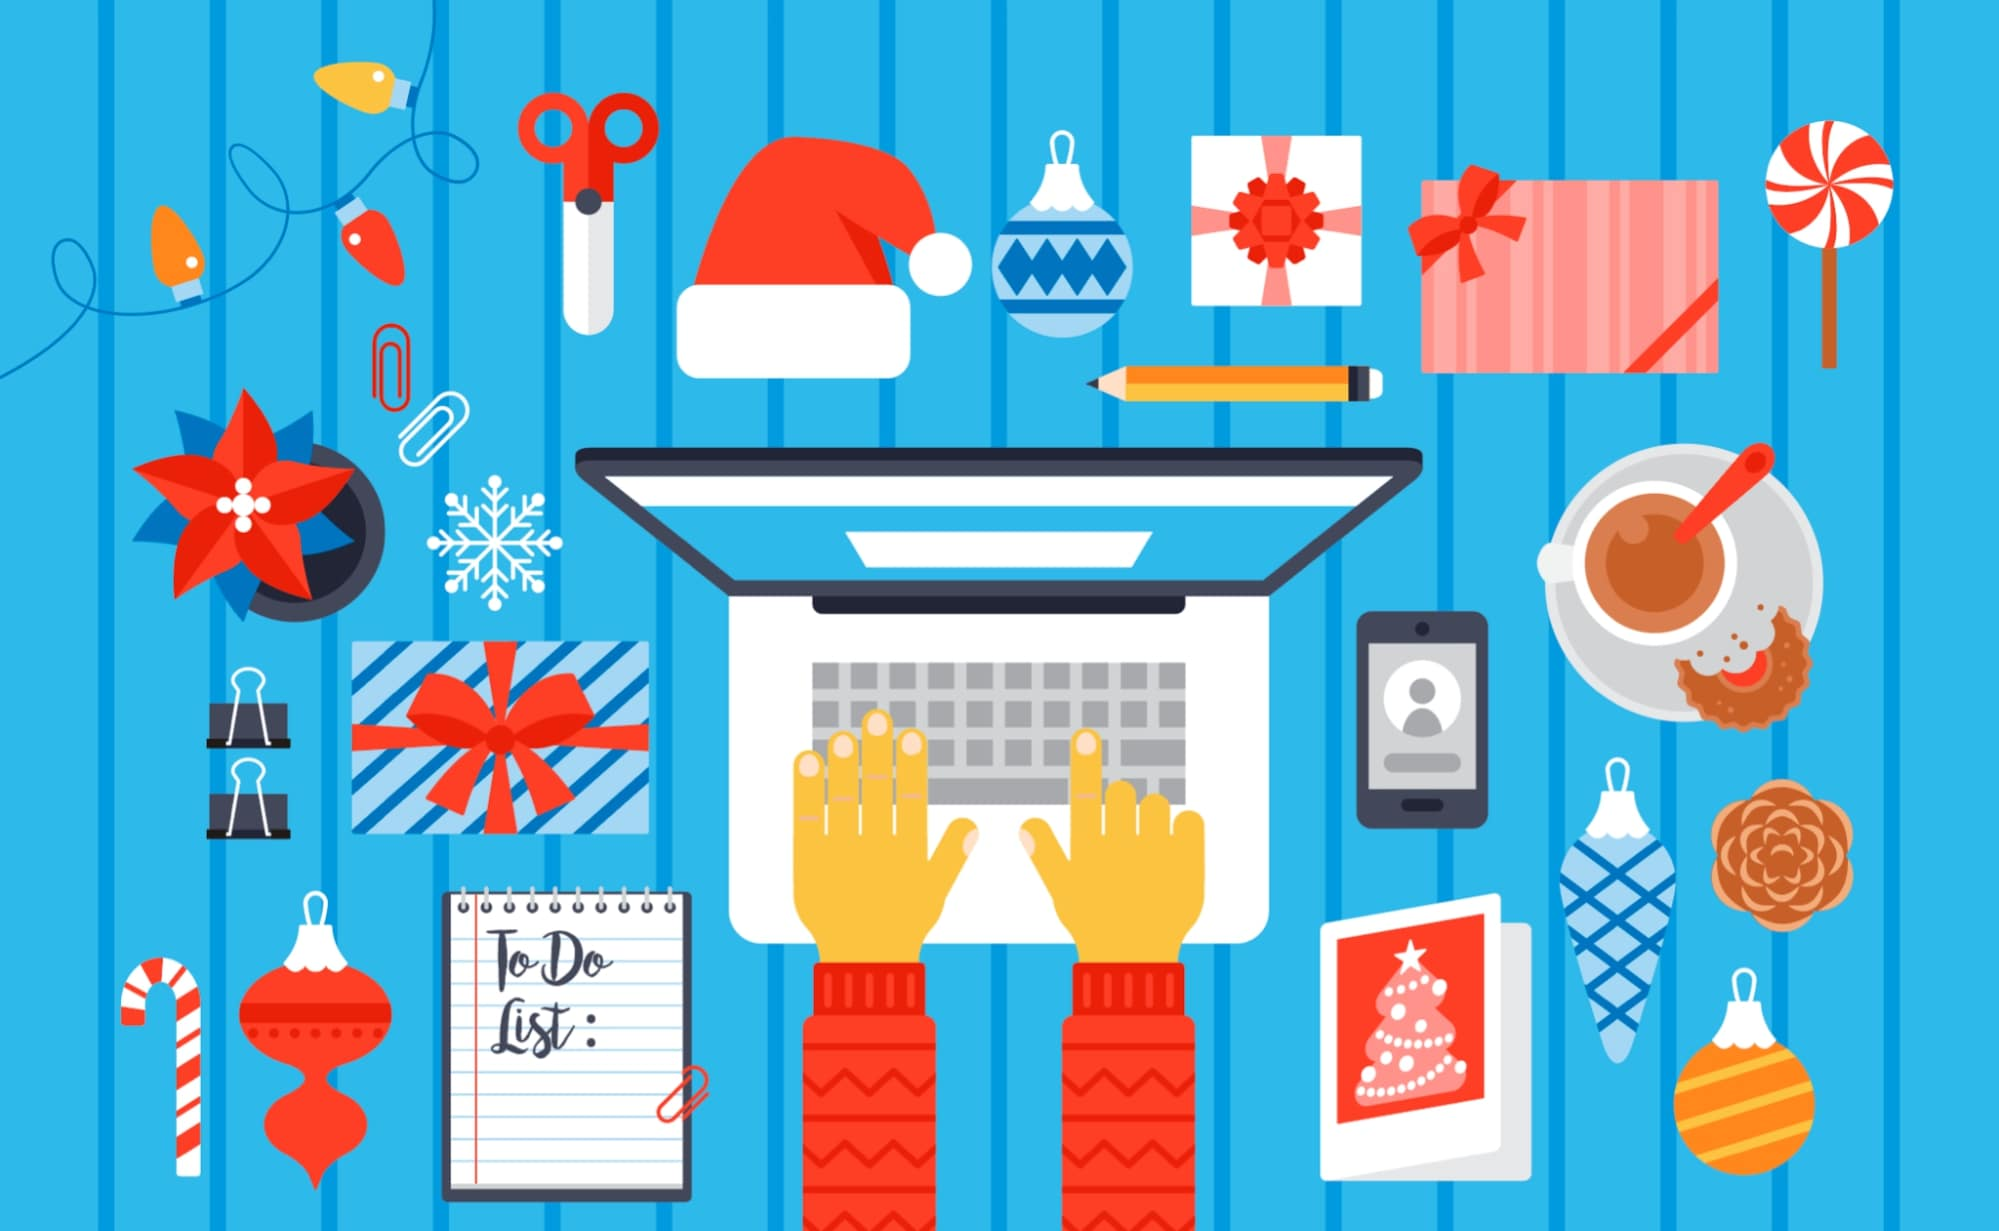 Why should you use emails for holiday marketing?